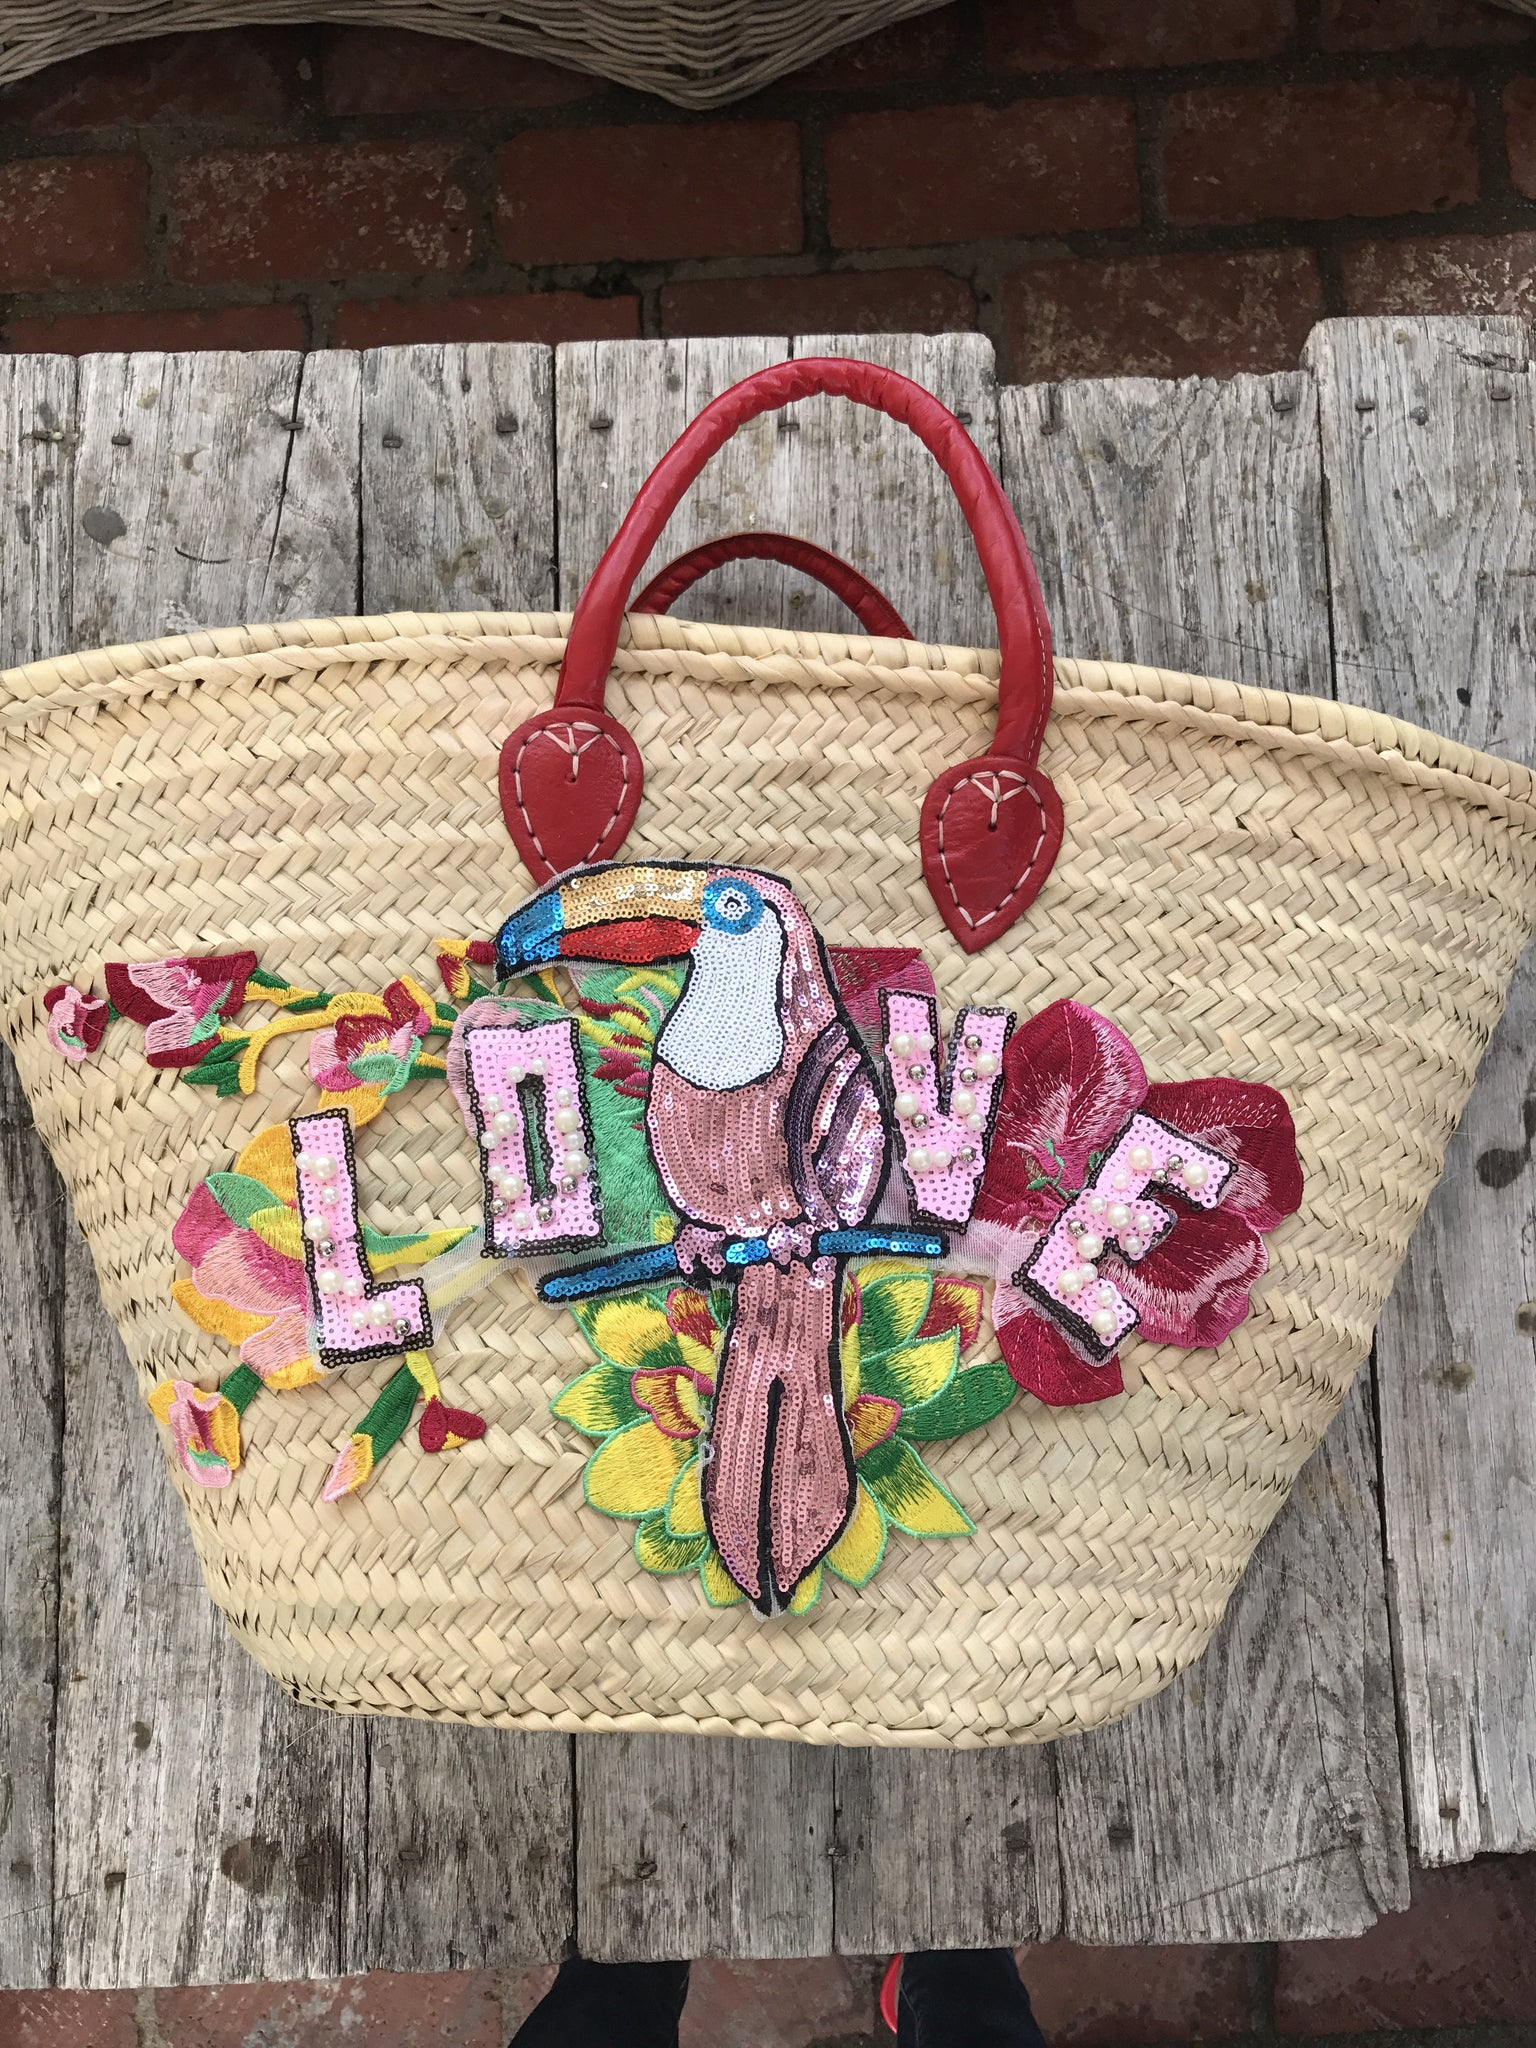 The LOVE Beach Basket